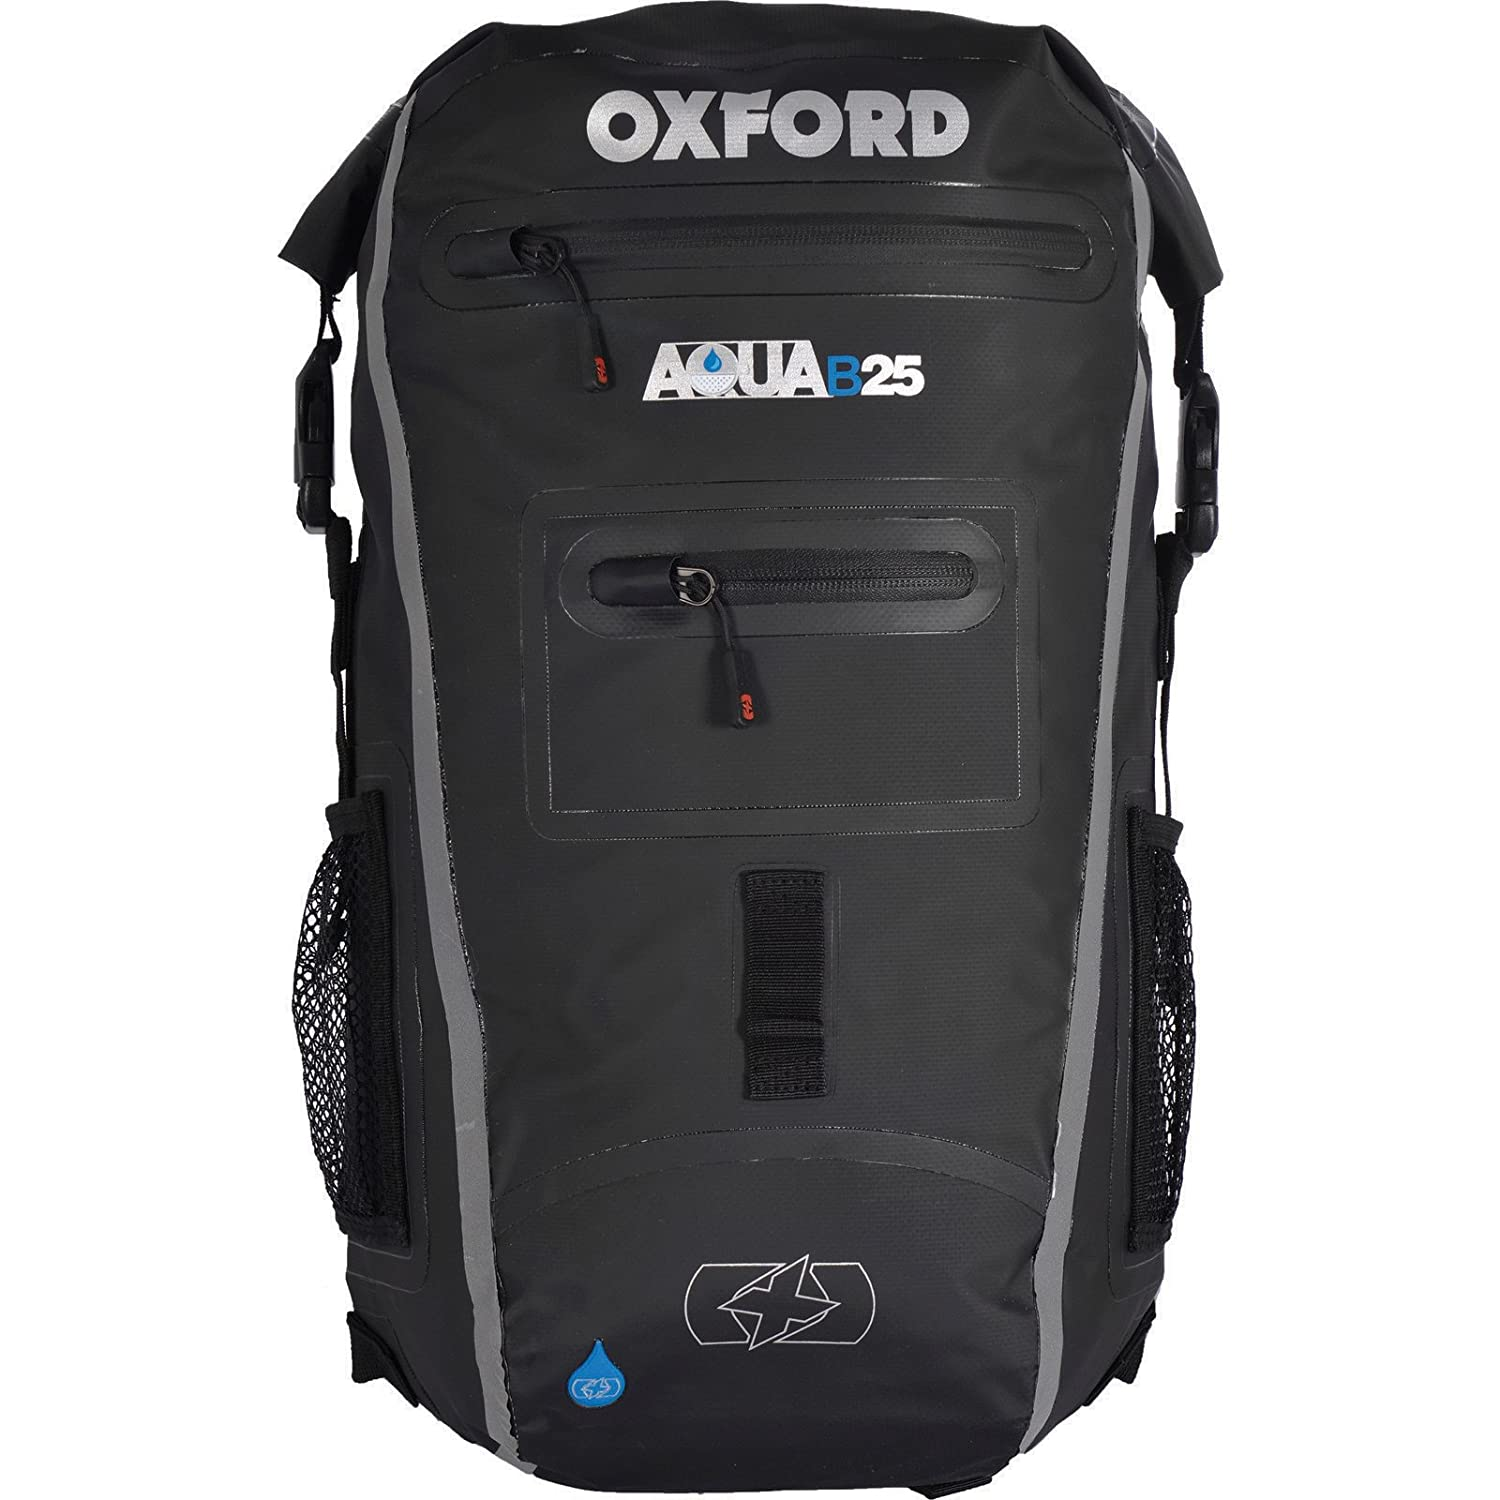 Oxford Unisex Aqua B Backpack, Black/Fluorescent, 25 litre Black/Grey OL962